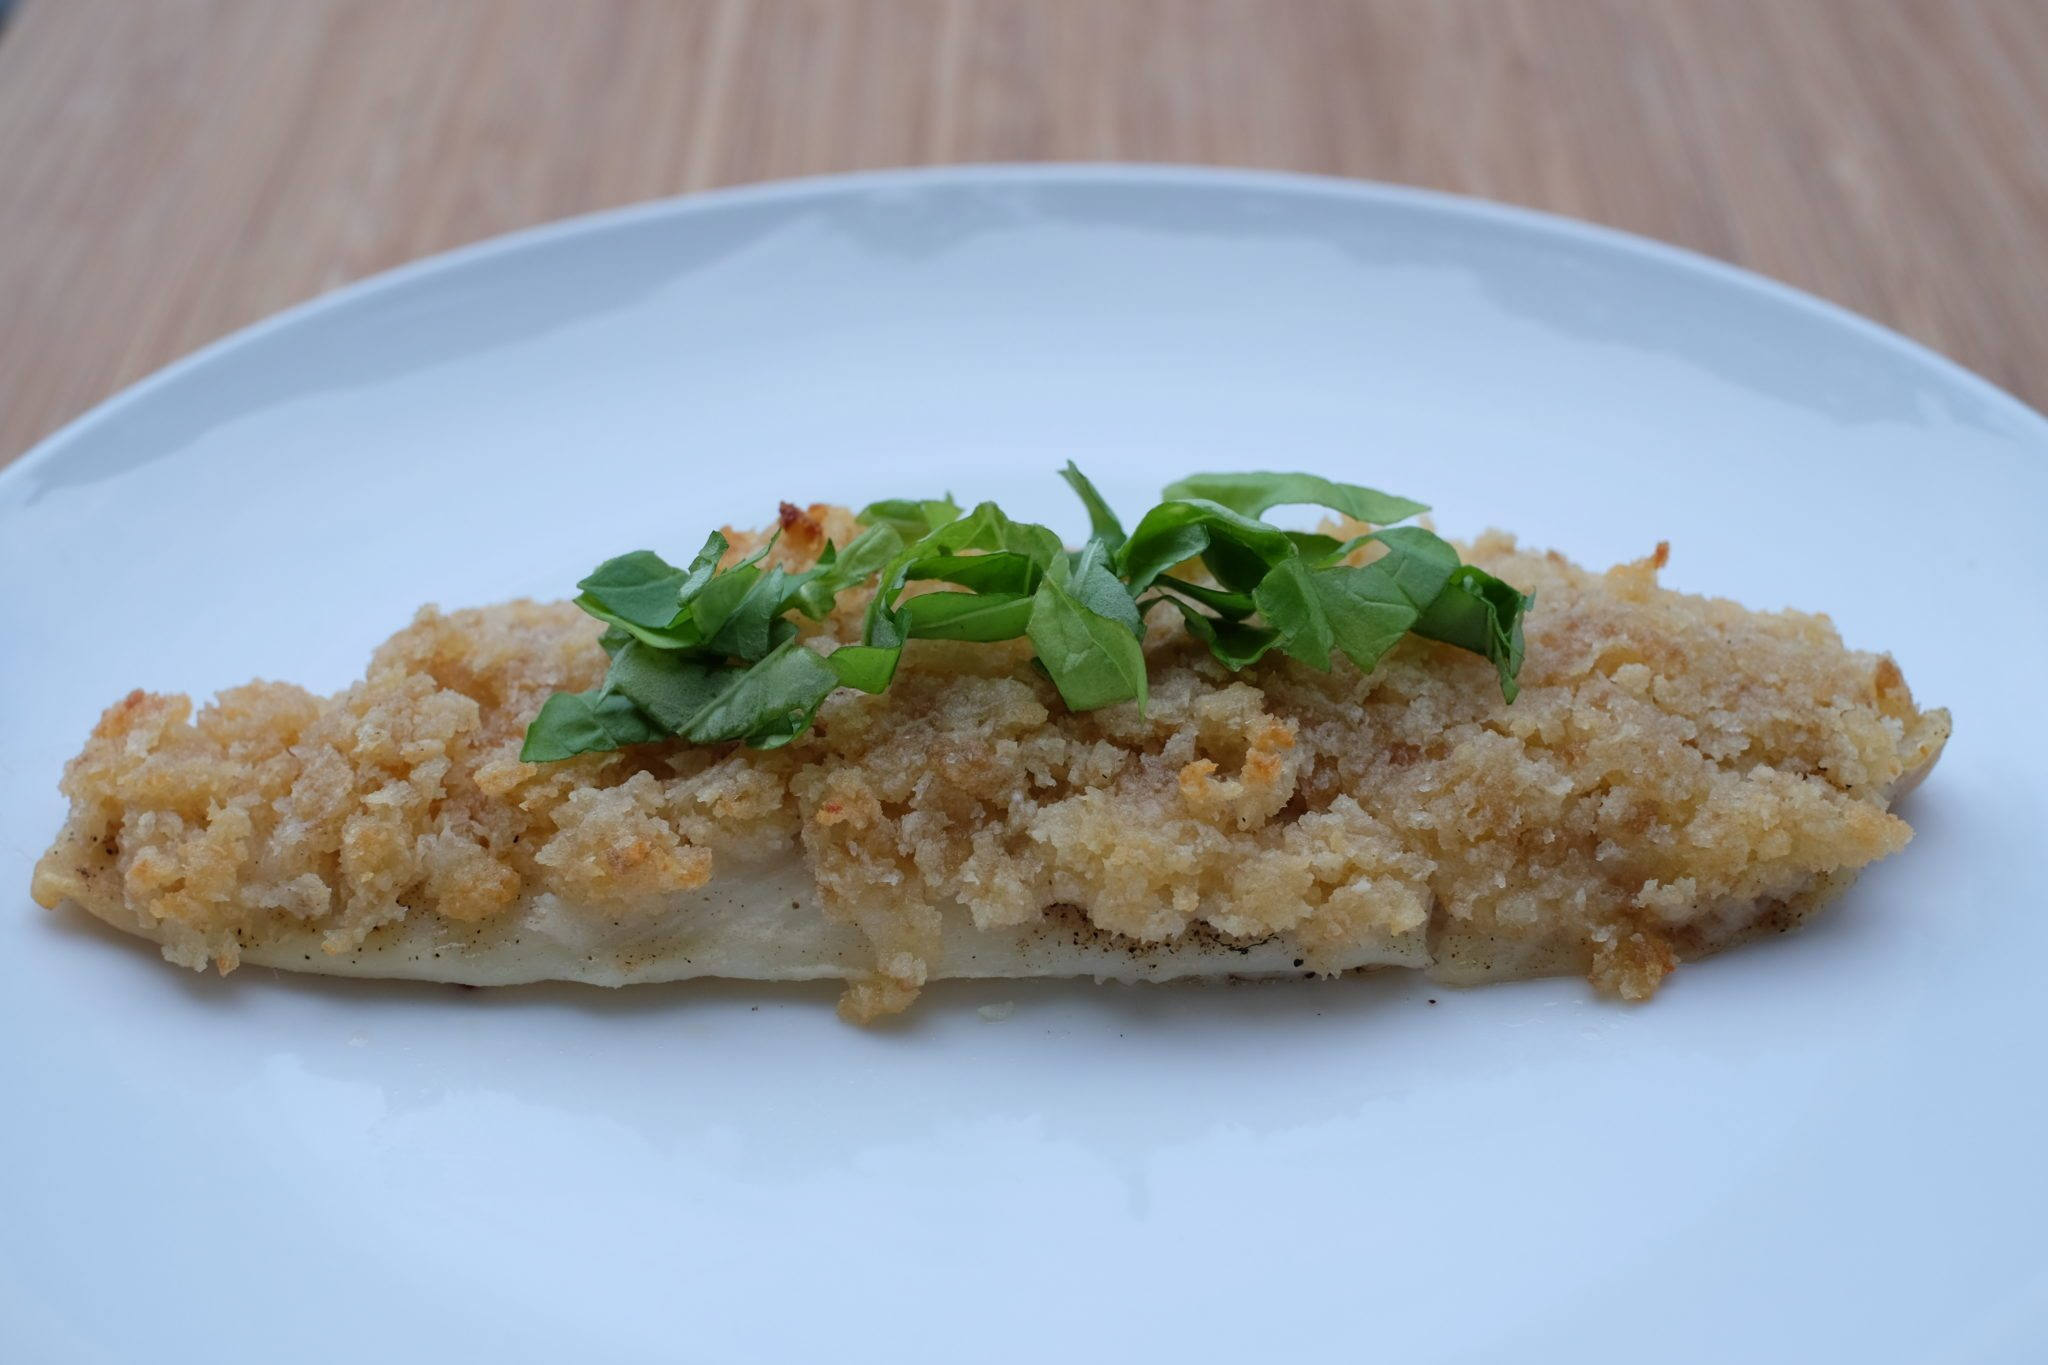 Parmesan crusted baked fish rebecca bitzer associates for Parmesan crusted fish